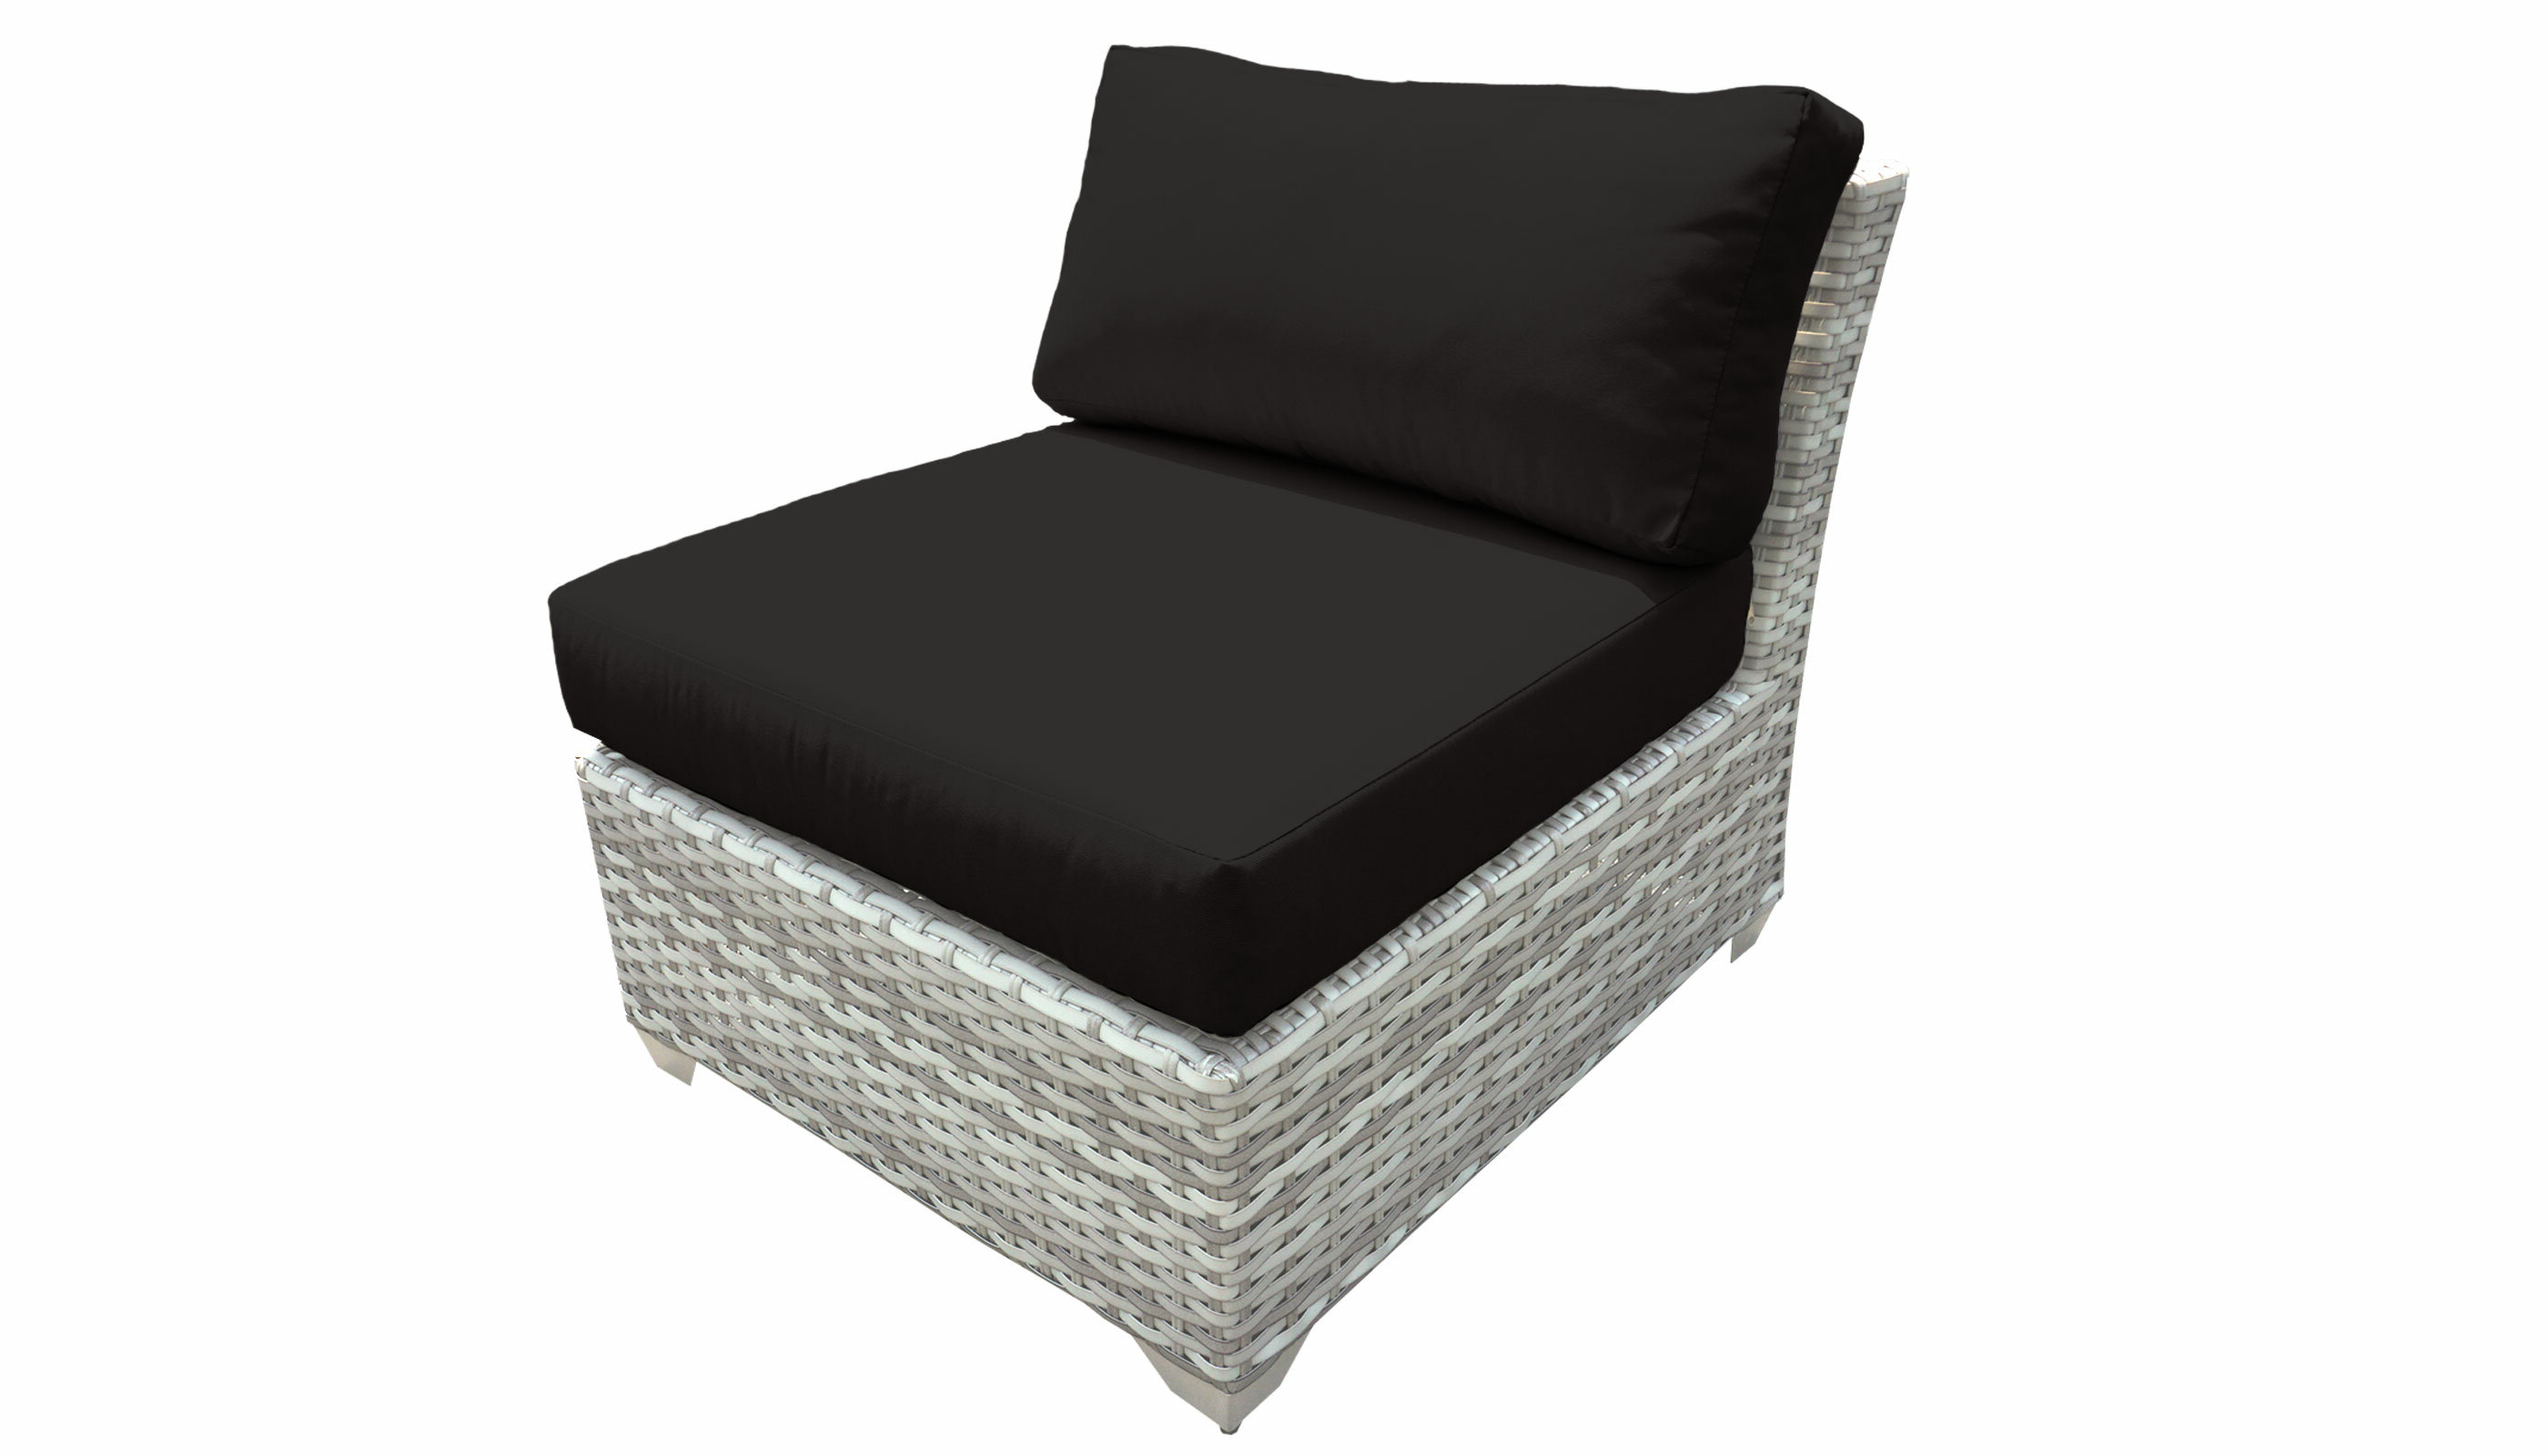 Falmouth Armless Patio Chair With Cushions Regarding Most Up To Date Falmouth Patio Sofas With Cushions (View 16 of 20)